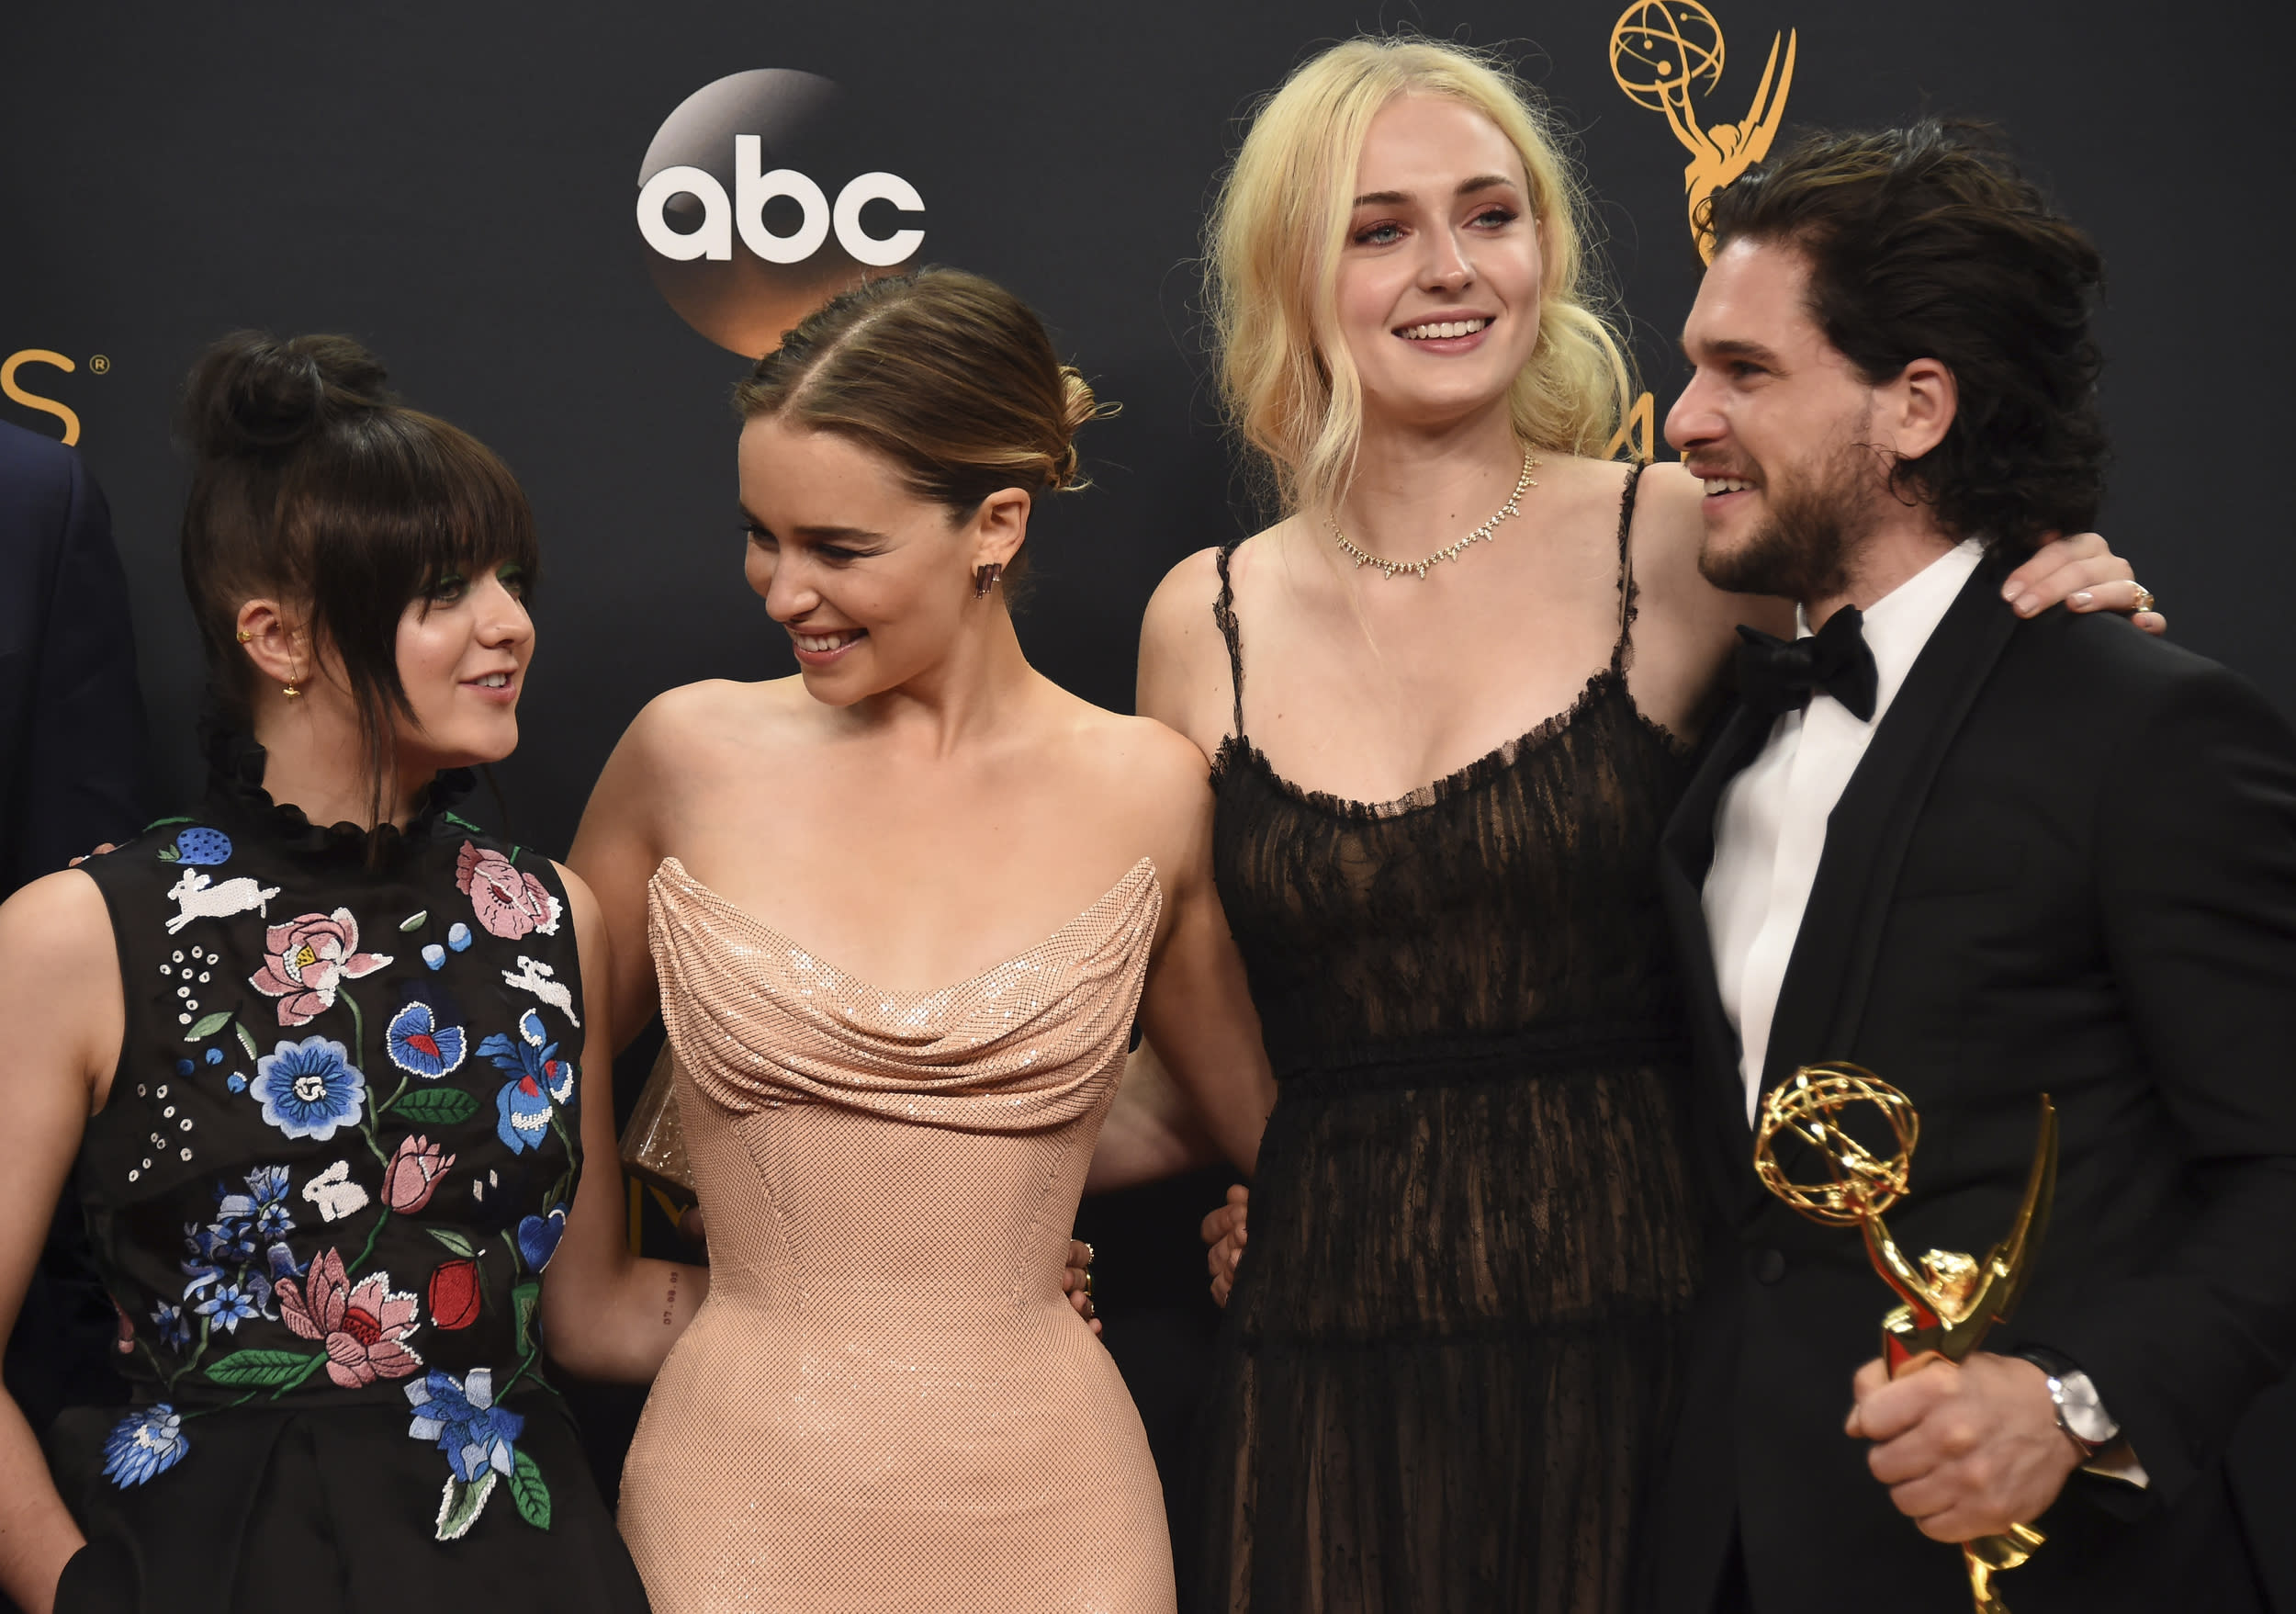 """Maisie Williams, from left, Emilia Clarke, Sophie Turner, and Kit Harington winners of the award for outstanding drama series for """"Game of Thrones"""" pose in the press room at the 68th Primetime Emmy Awards on Sunday, Sept. 18, 2016, at the Microsoft Theater in Los Angeles. (Photo by Jordan Strauss/Invision/AP)"""